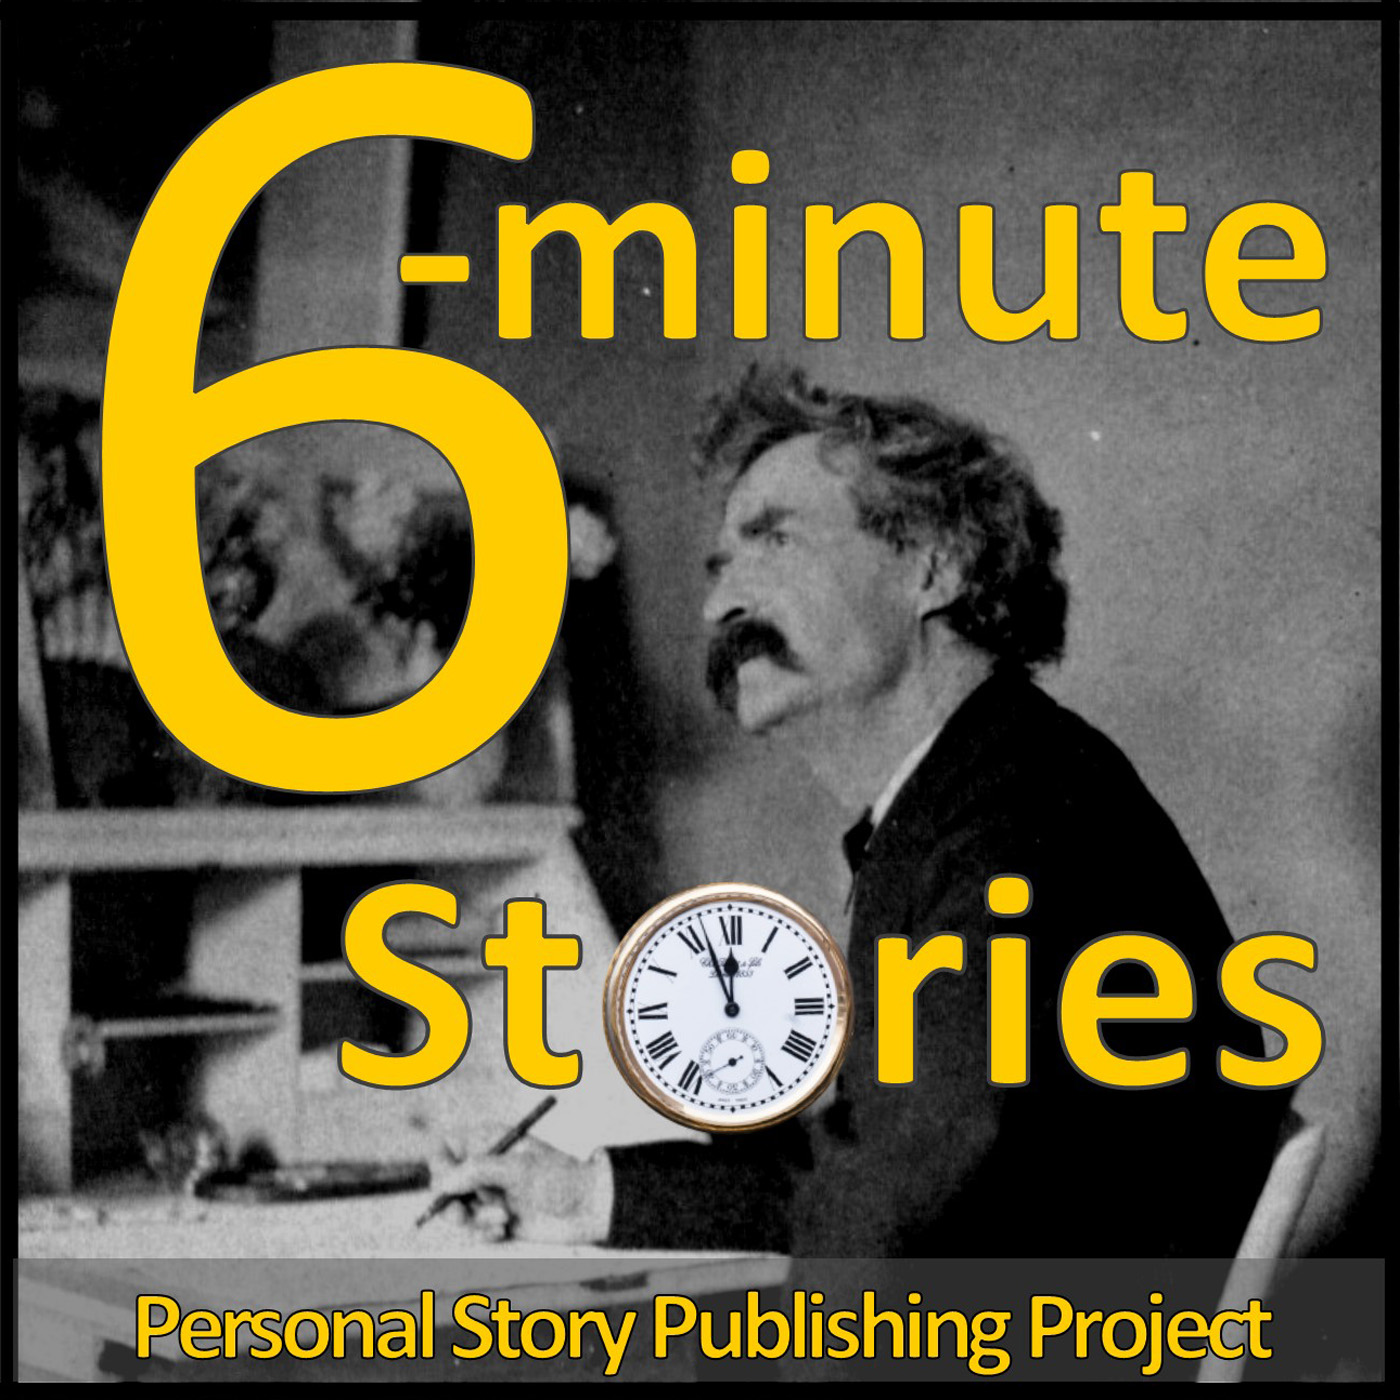 6minutestories logo.jpg